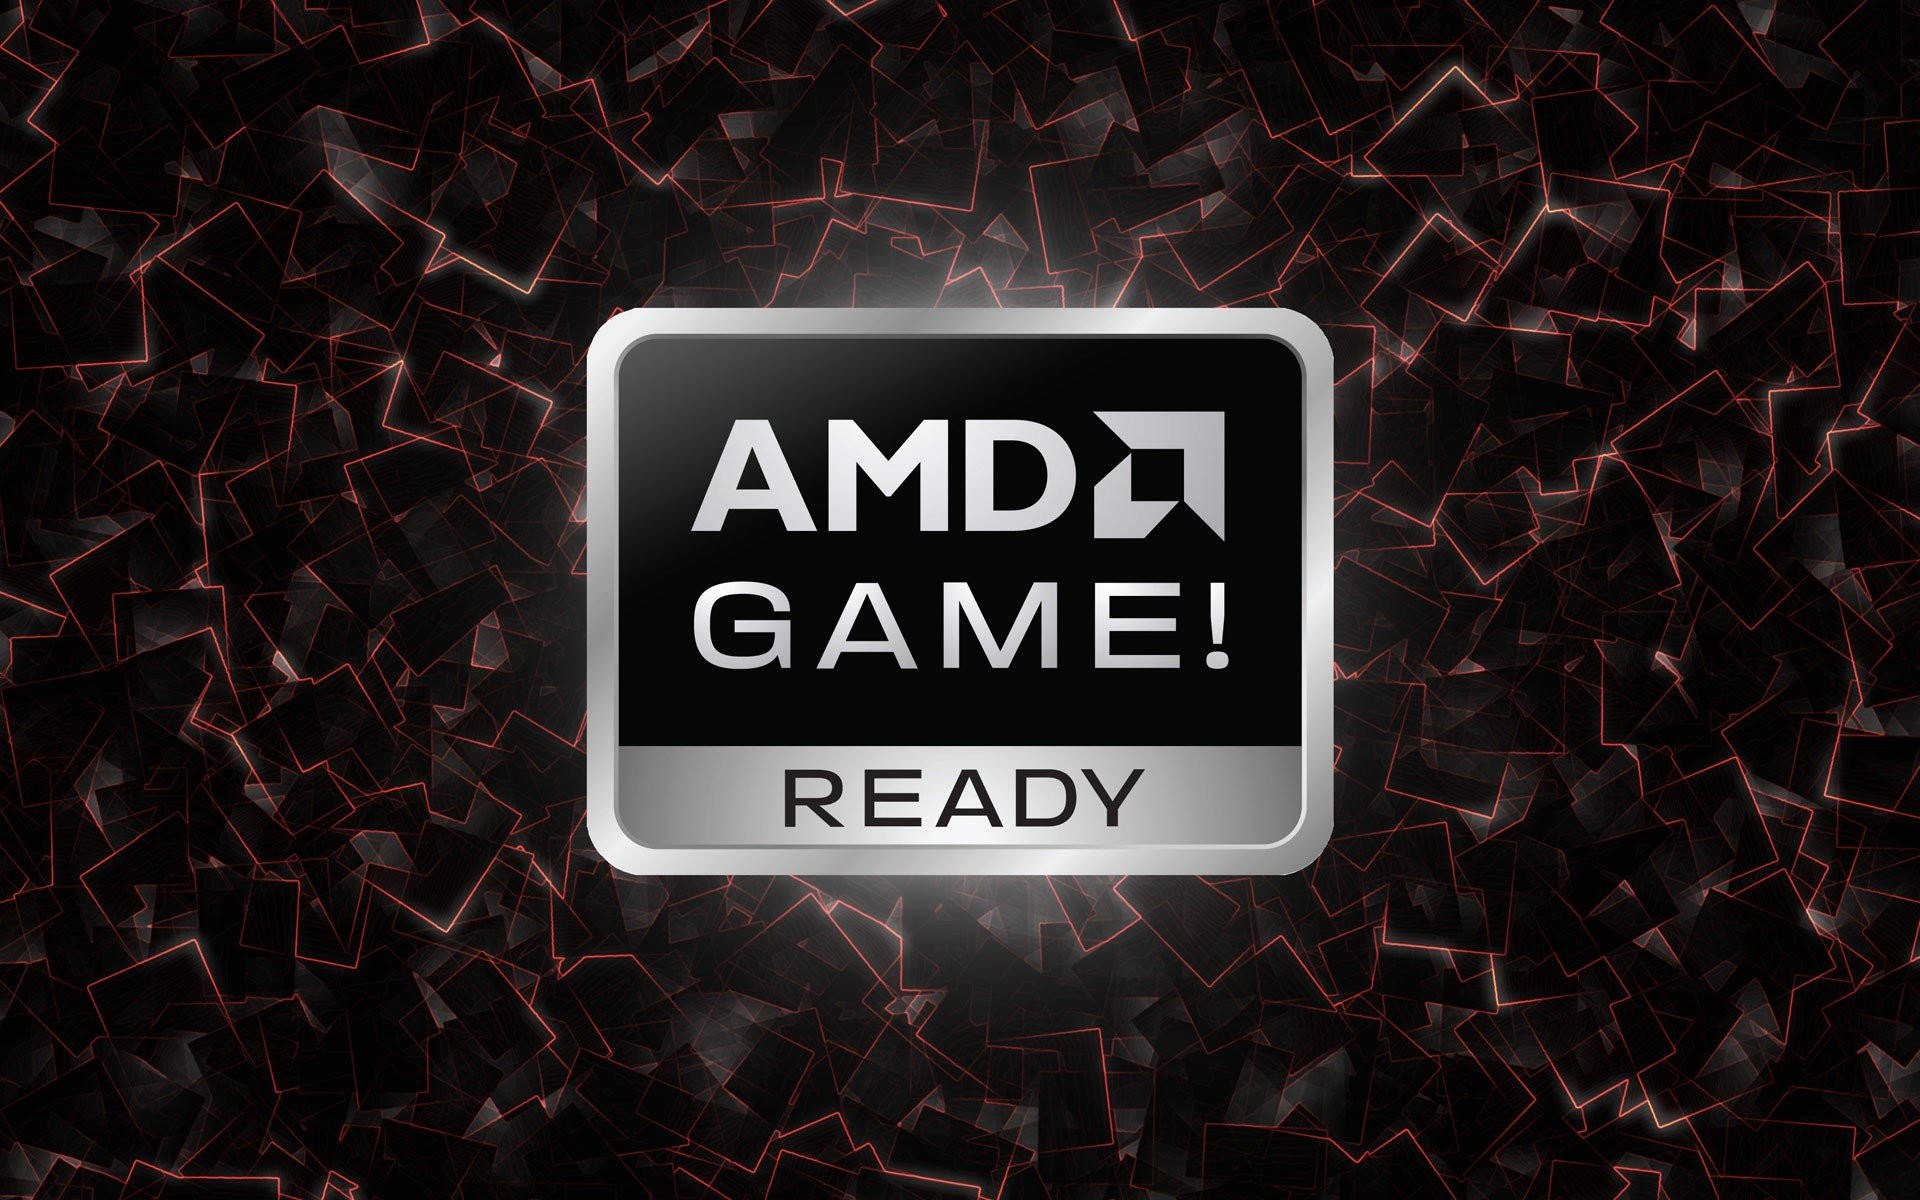 Top AMD Wallpaper In High Quality GoldWallpapers